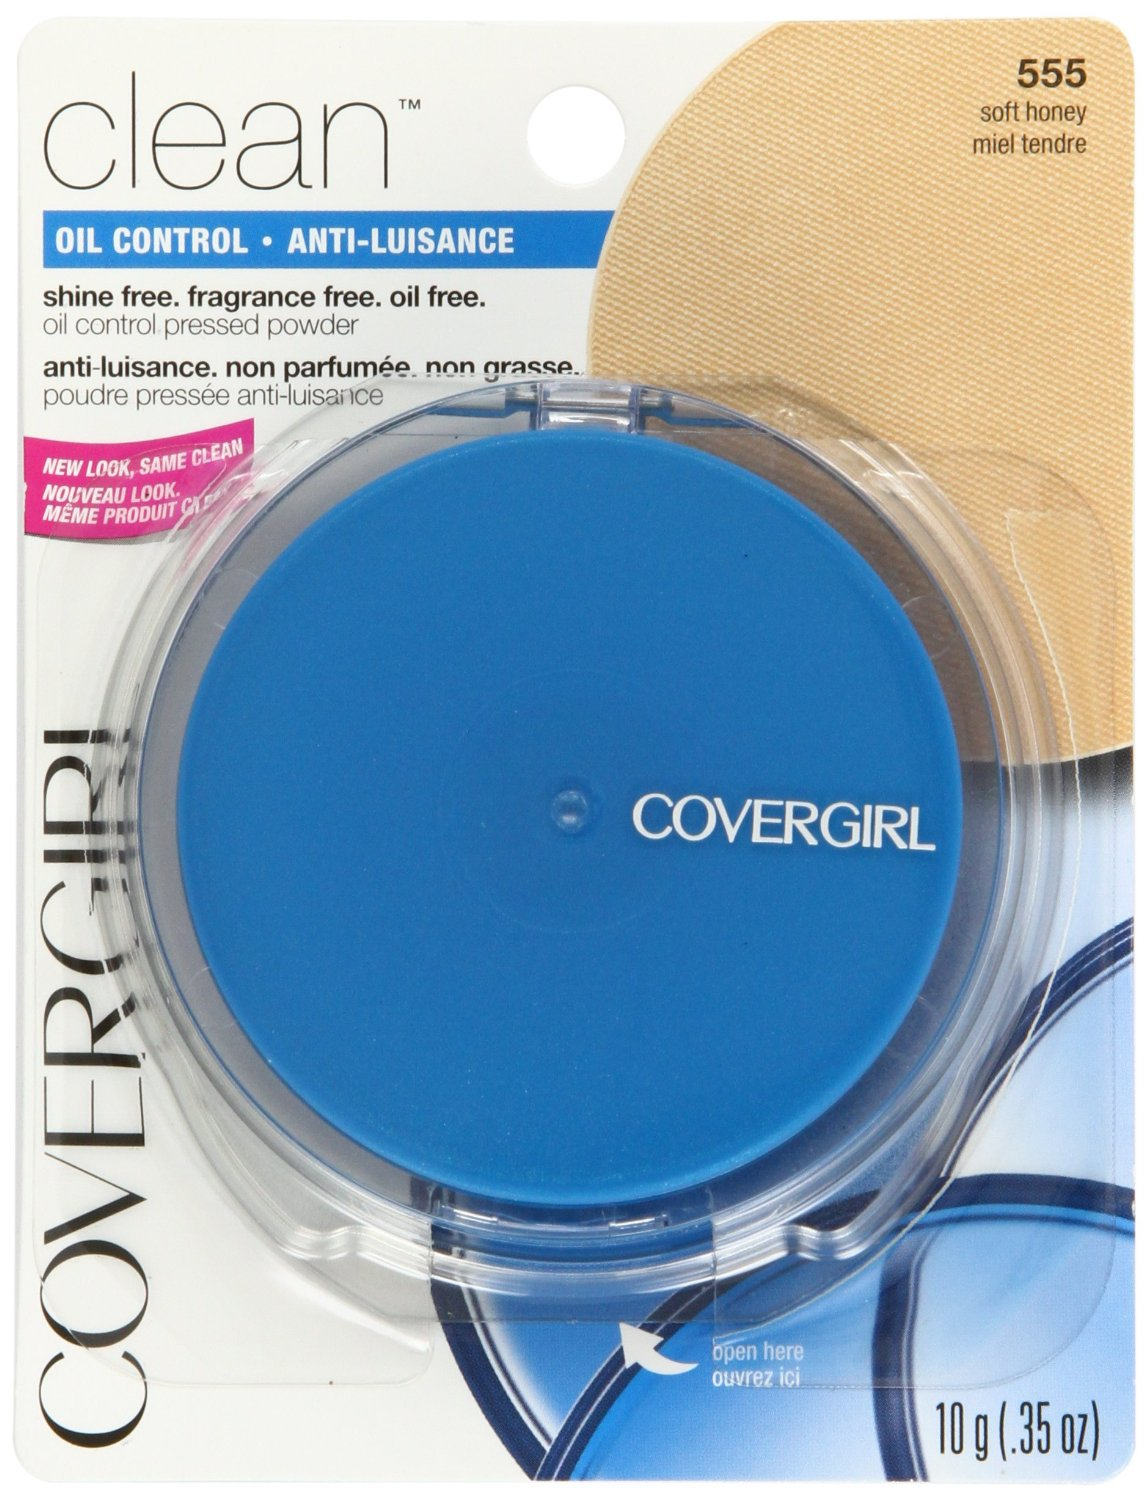 Covergirl Clean Pressed Powder Reviews In Powder